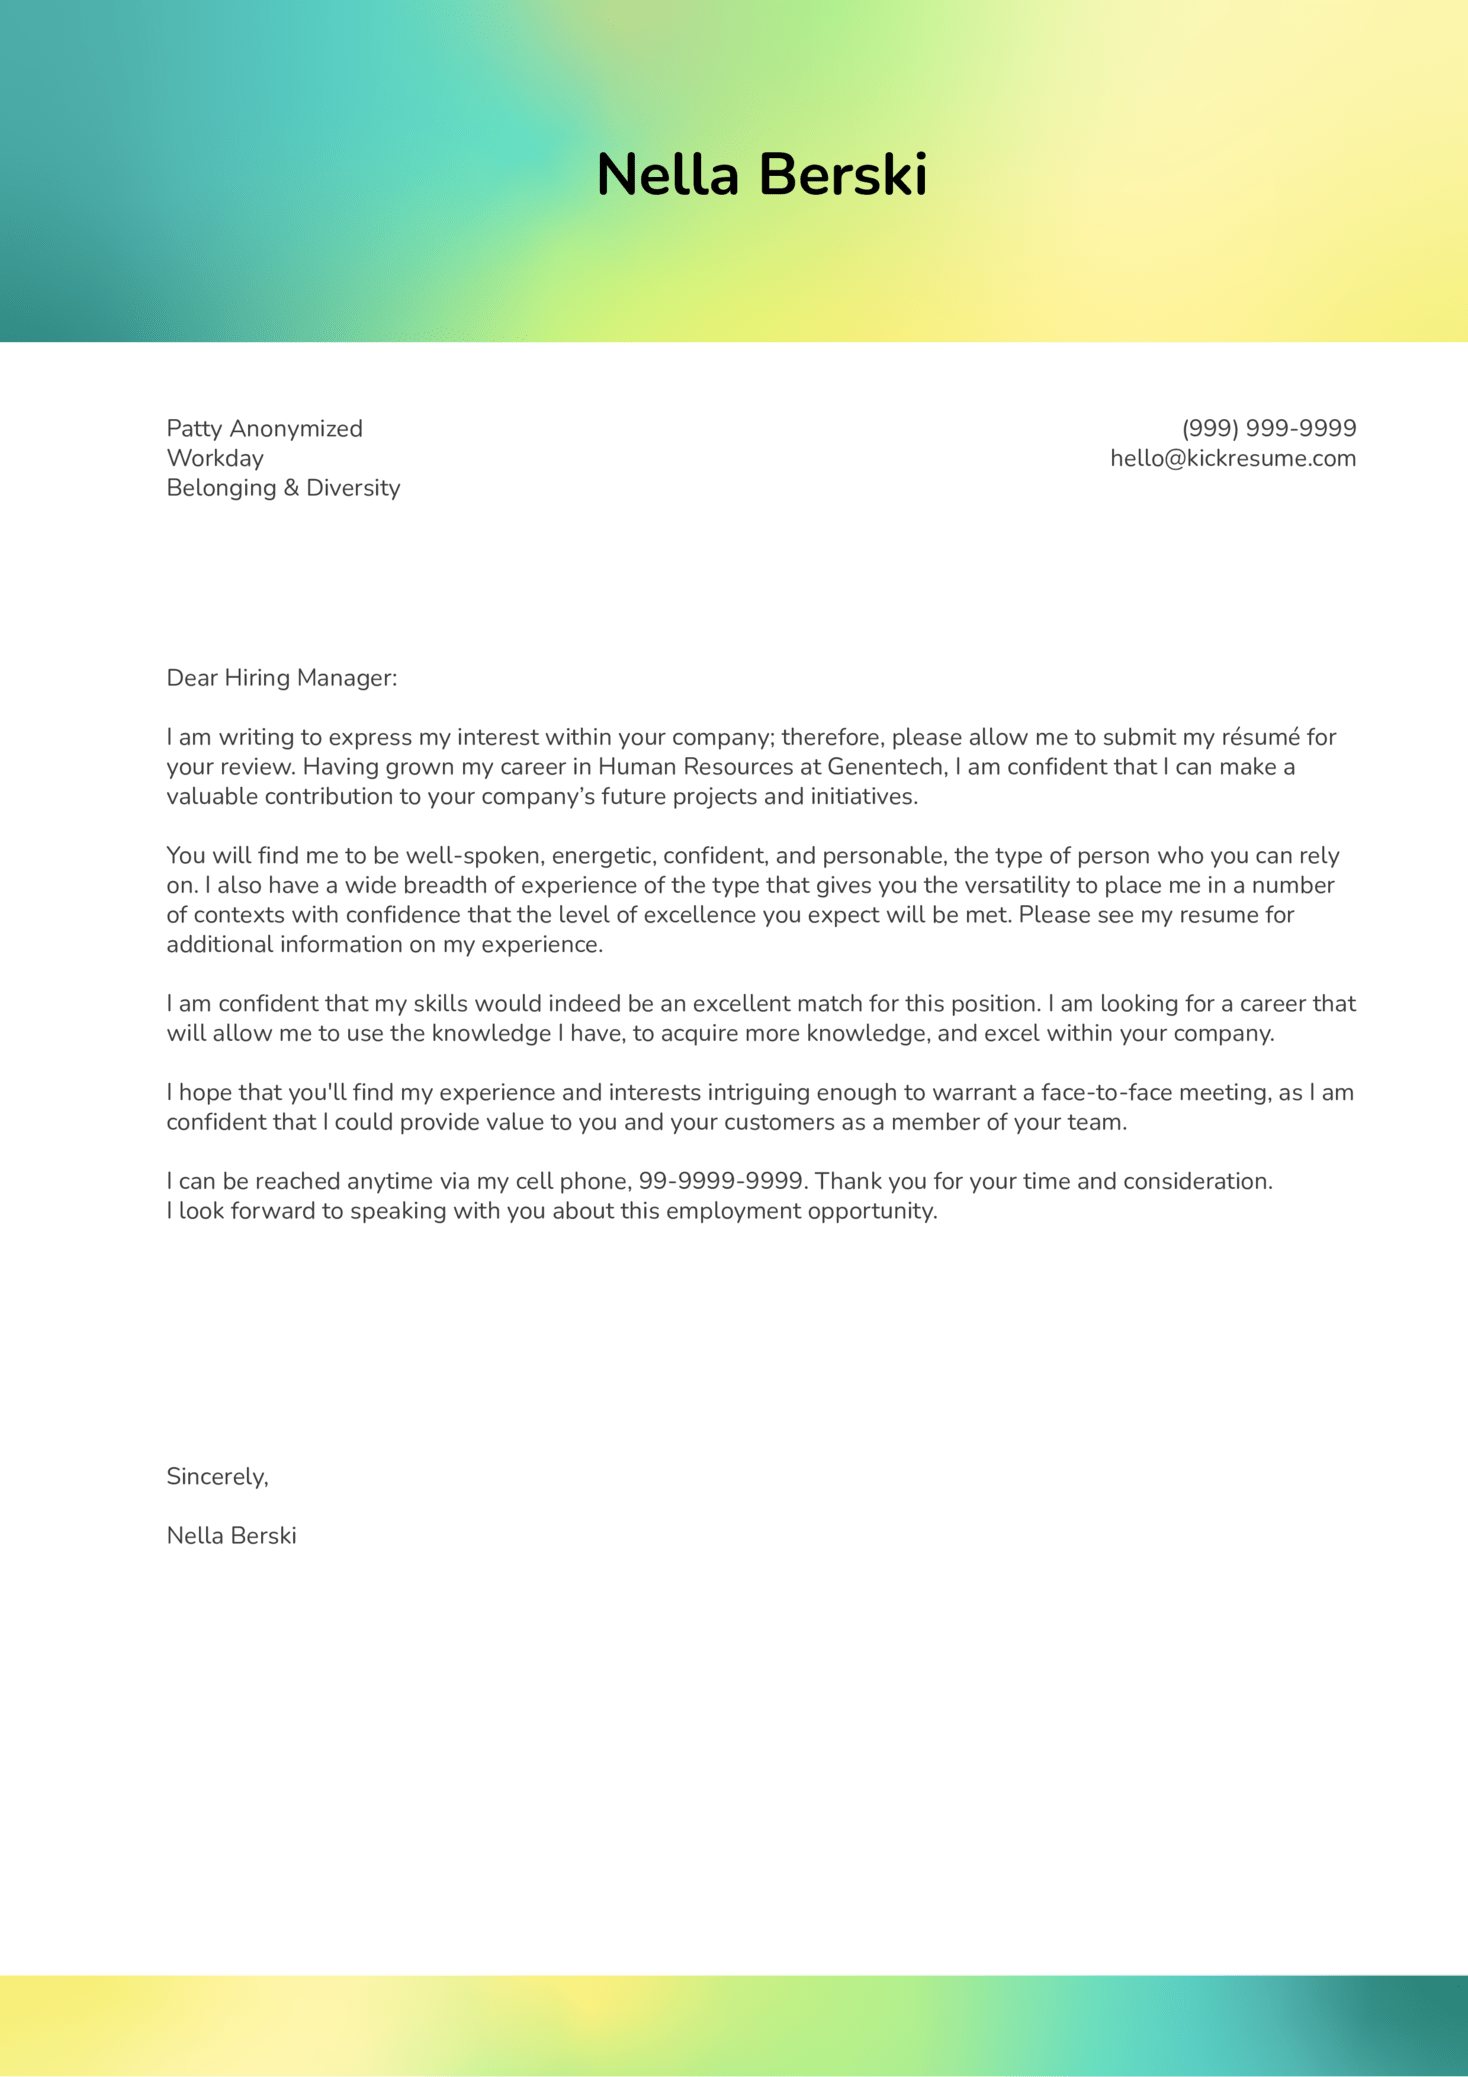 Workday Diversity Manager Cover Letter Sample